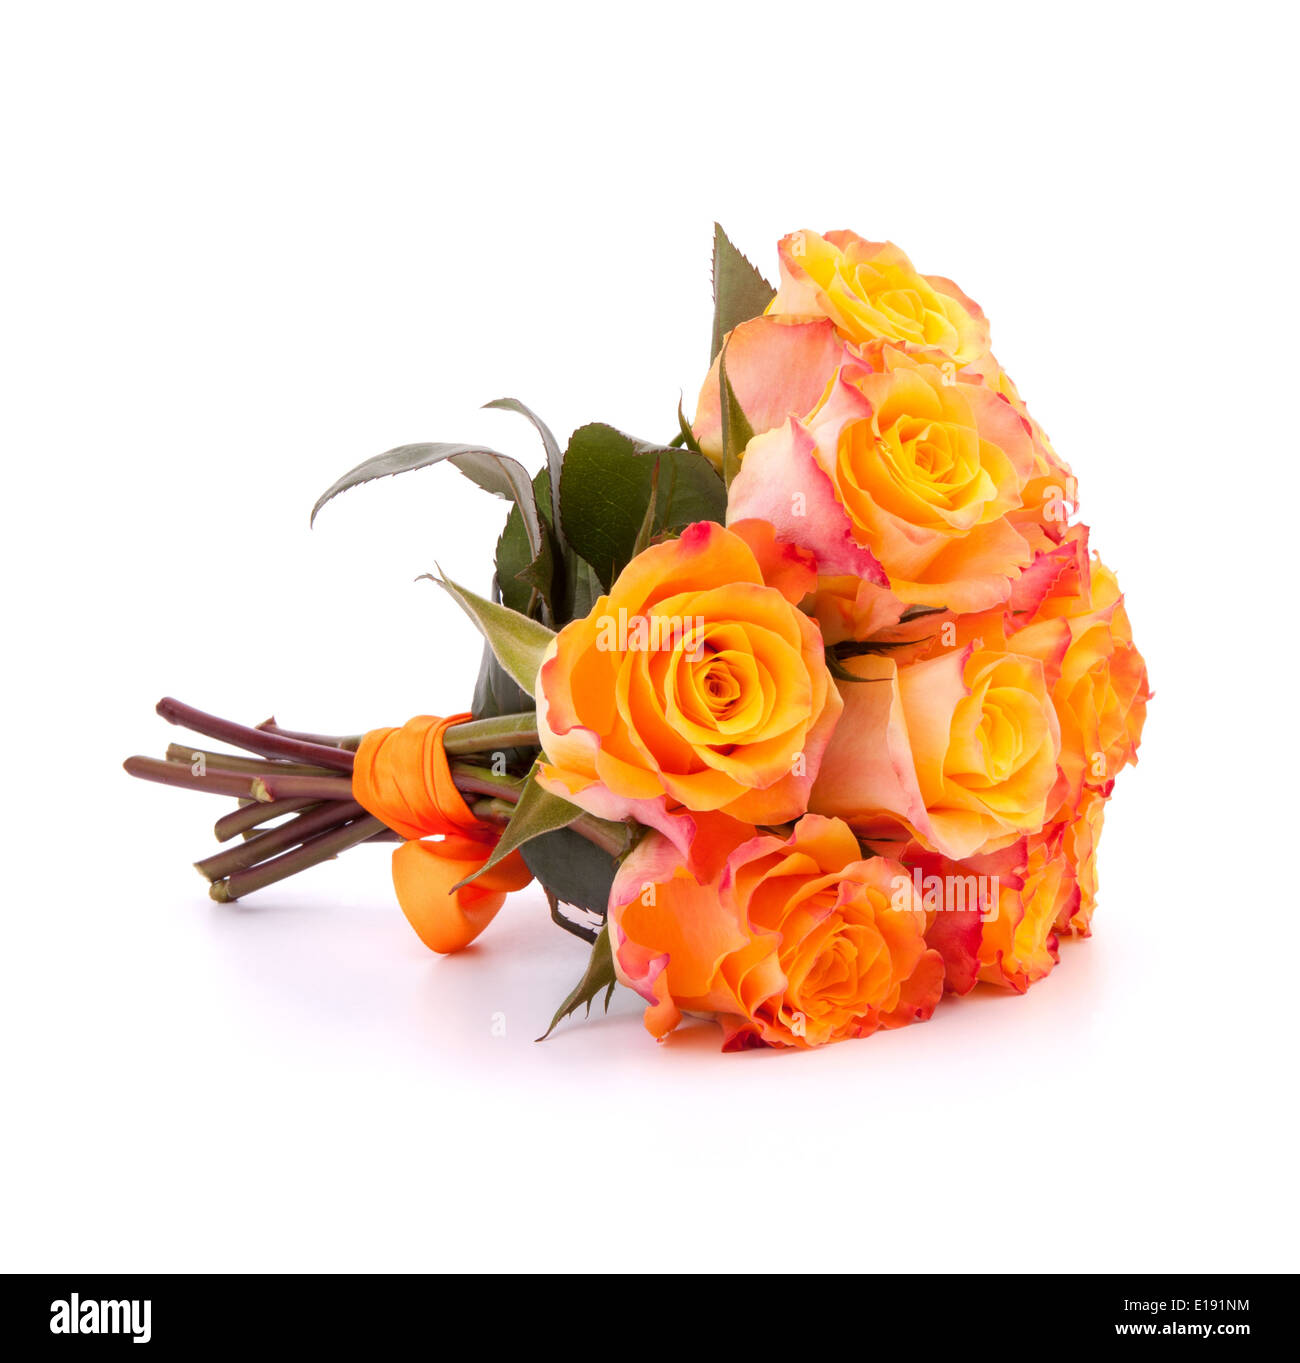 Yellow rose flower bouquet isolated on white background cutout stock yellow rose flower bouquet isolated on white background cutout mightylinksfo